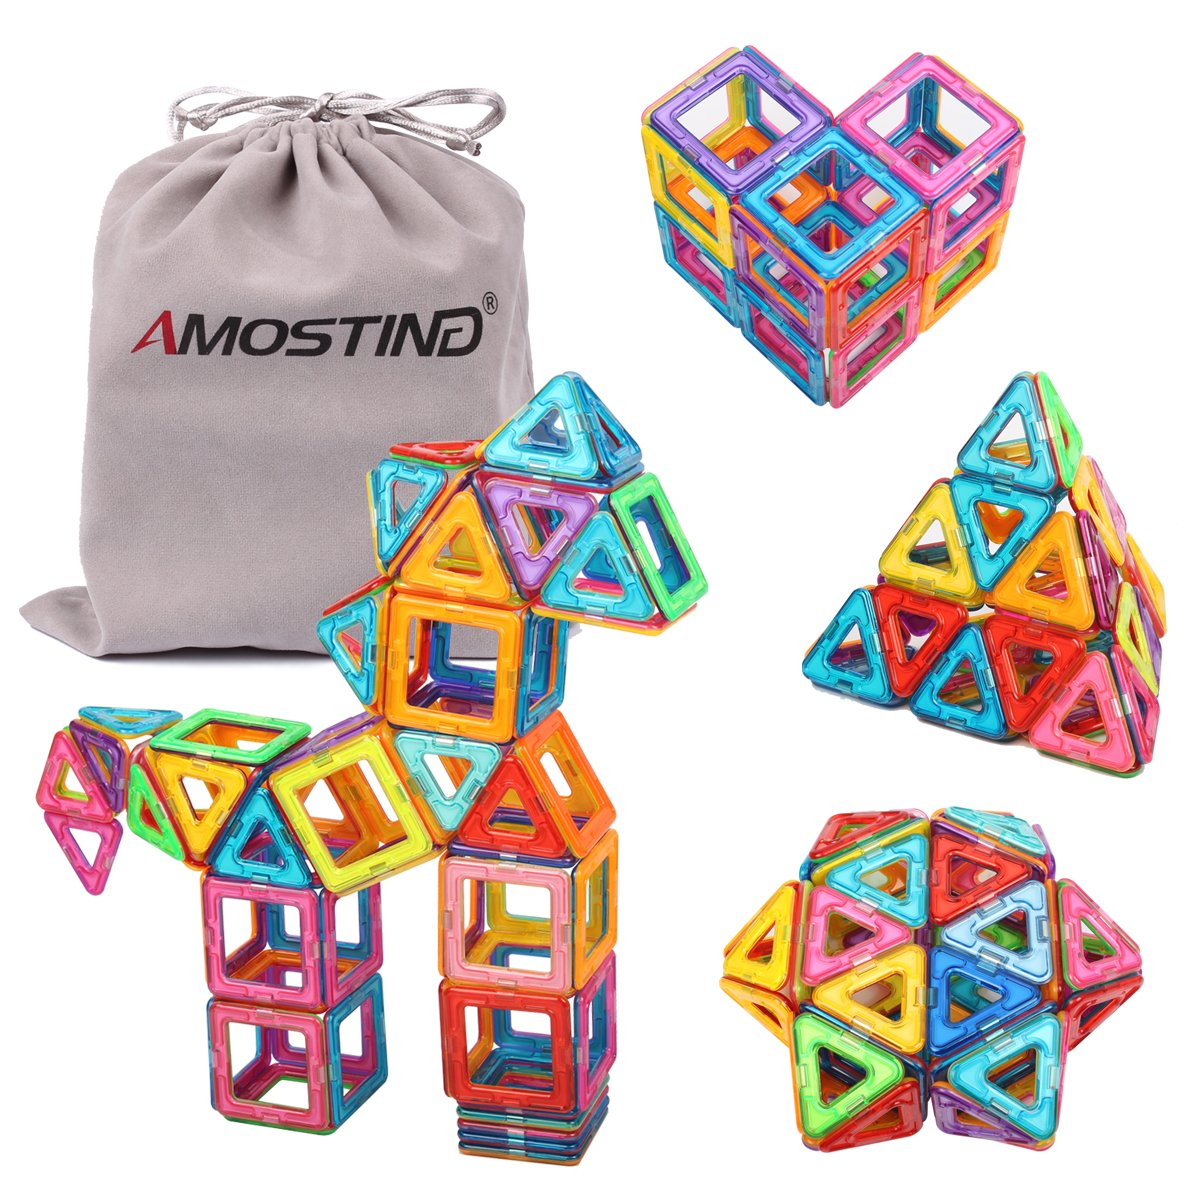 df6c7a1a1b2 Amazon.com  idoot Magnetic Tiles Building Blocks Set Educational Toys for  Kids with Storage Bag - 64pcs  Toys   Games